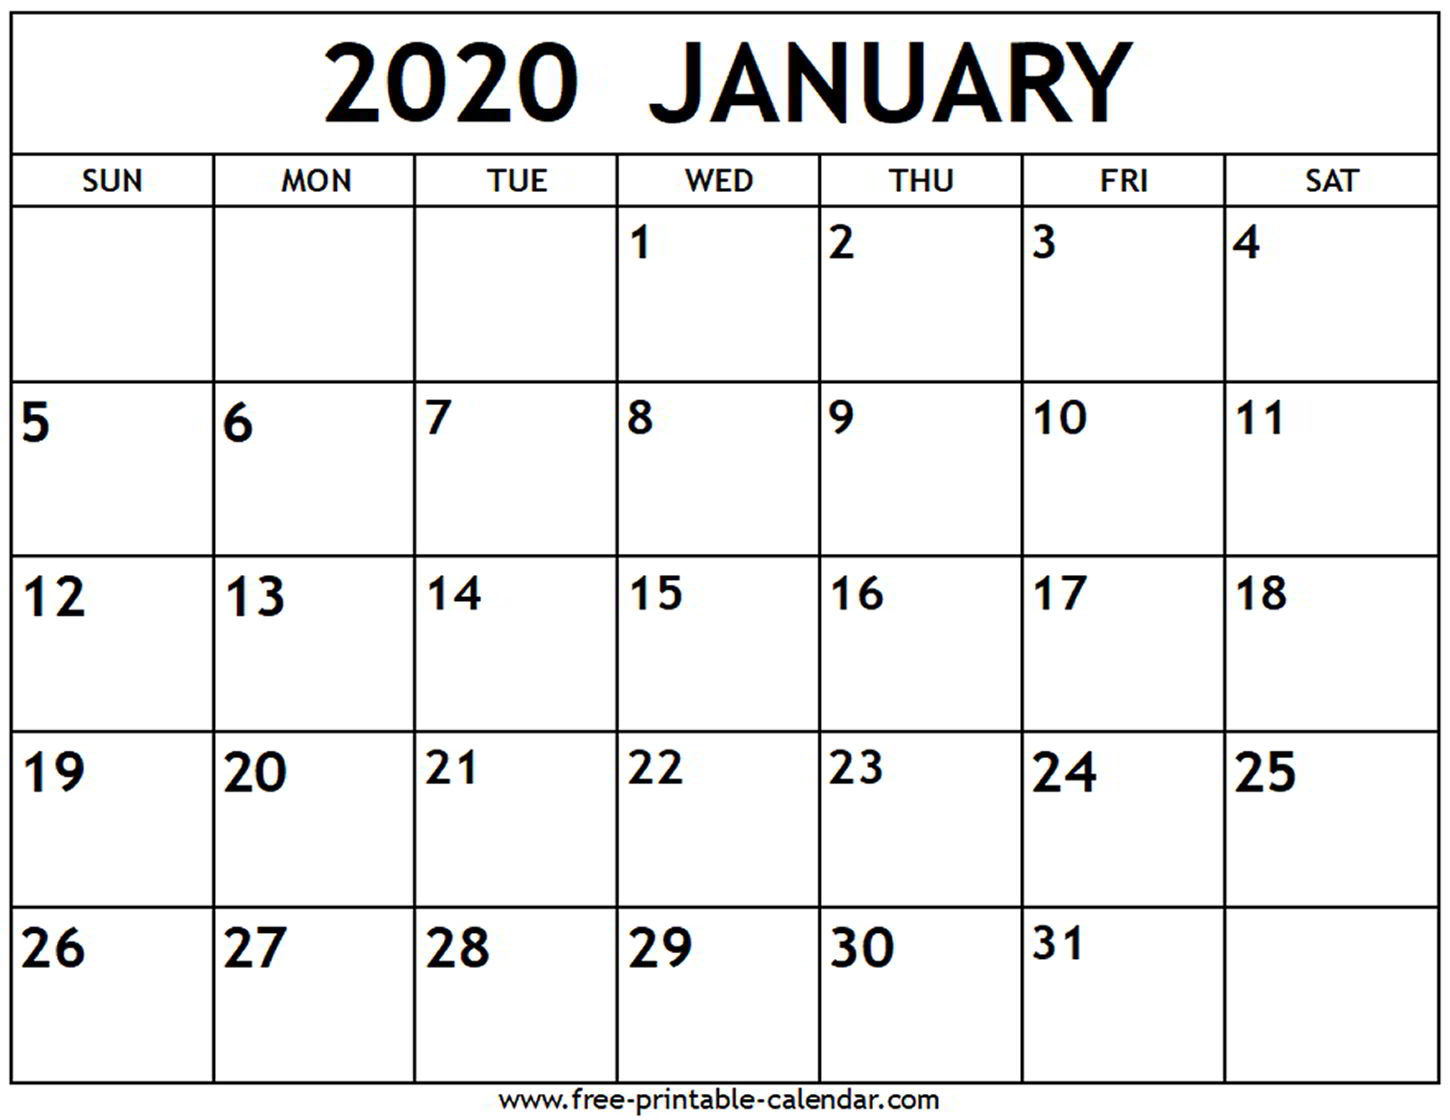 January 2020 Calendar - Free-Printable-Calendar in 2020 Free Printable Calendars Without Downloading